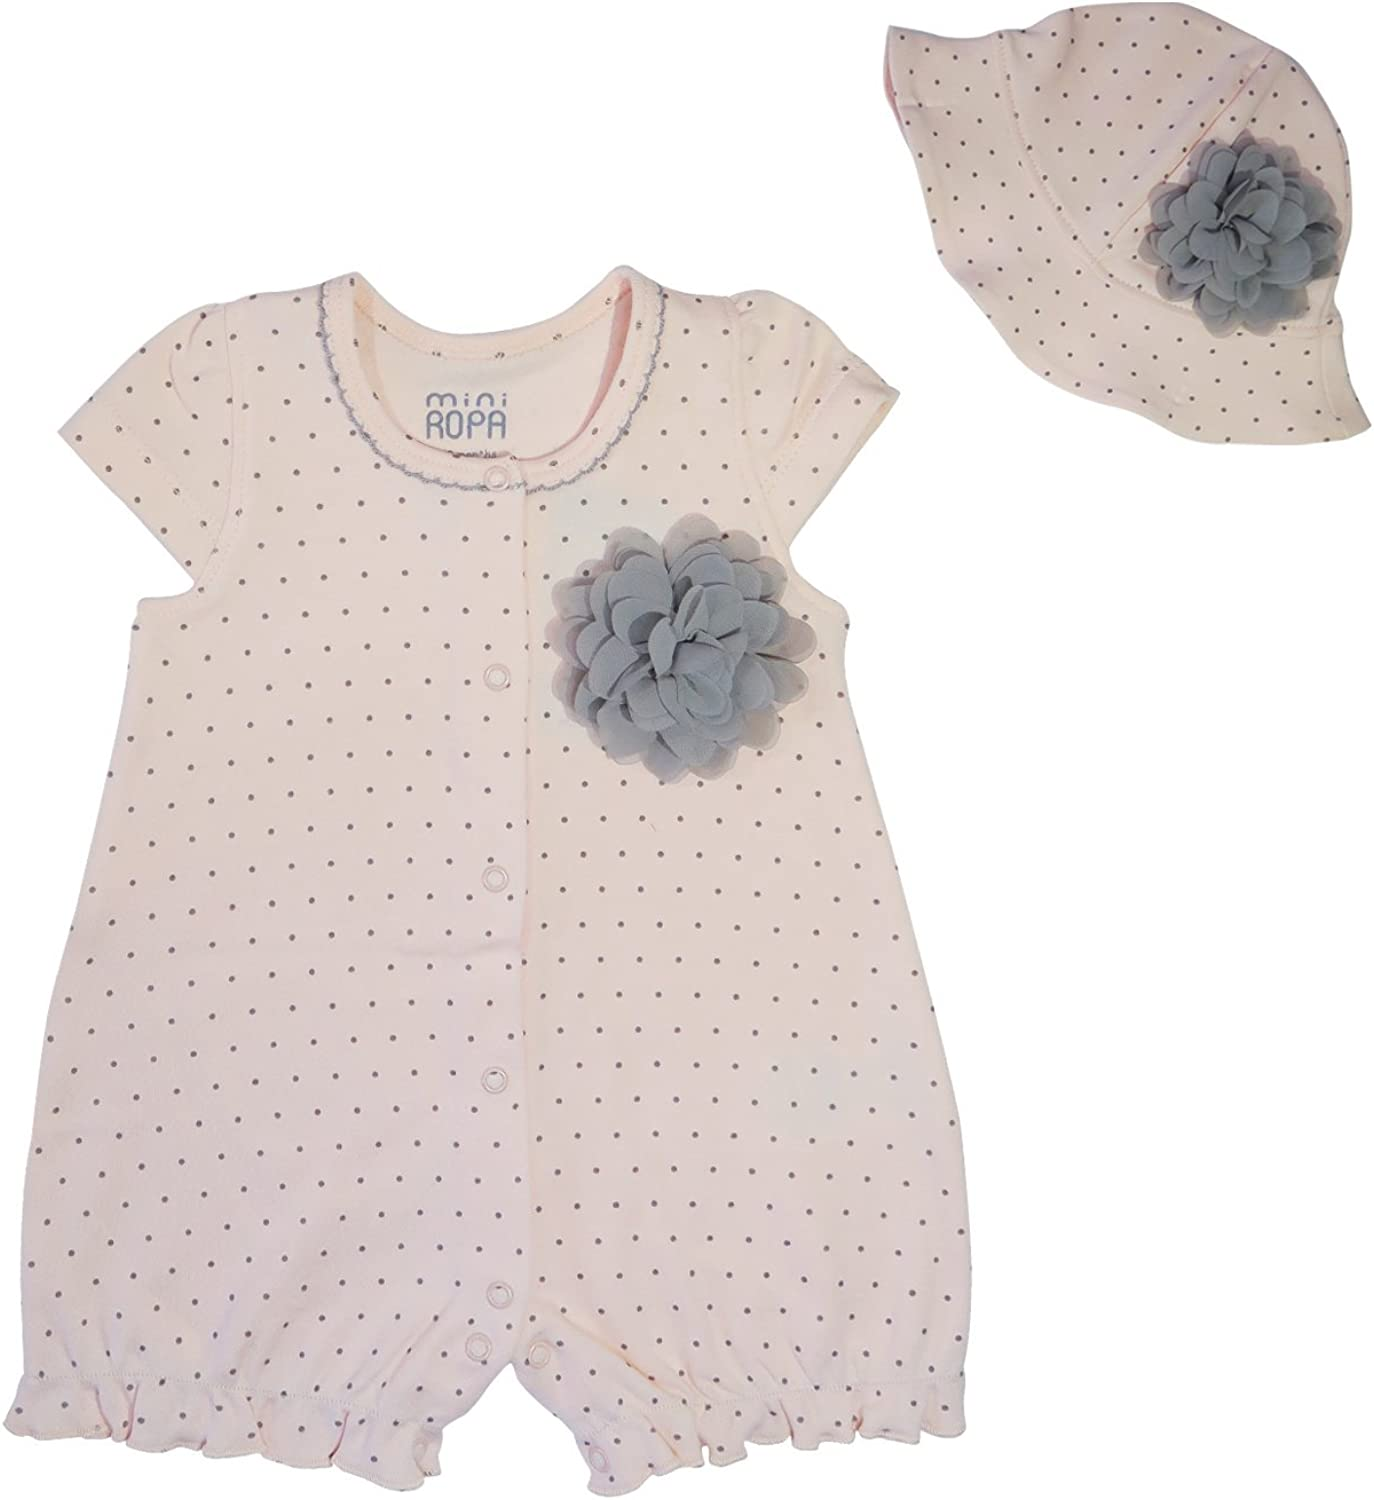 Mini Ropa Ultra Soft 100/% Turkish Cotton Baby Girls Breathing Romper Bodysuit